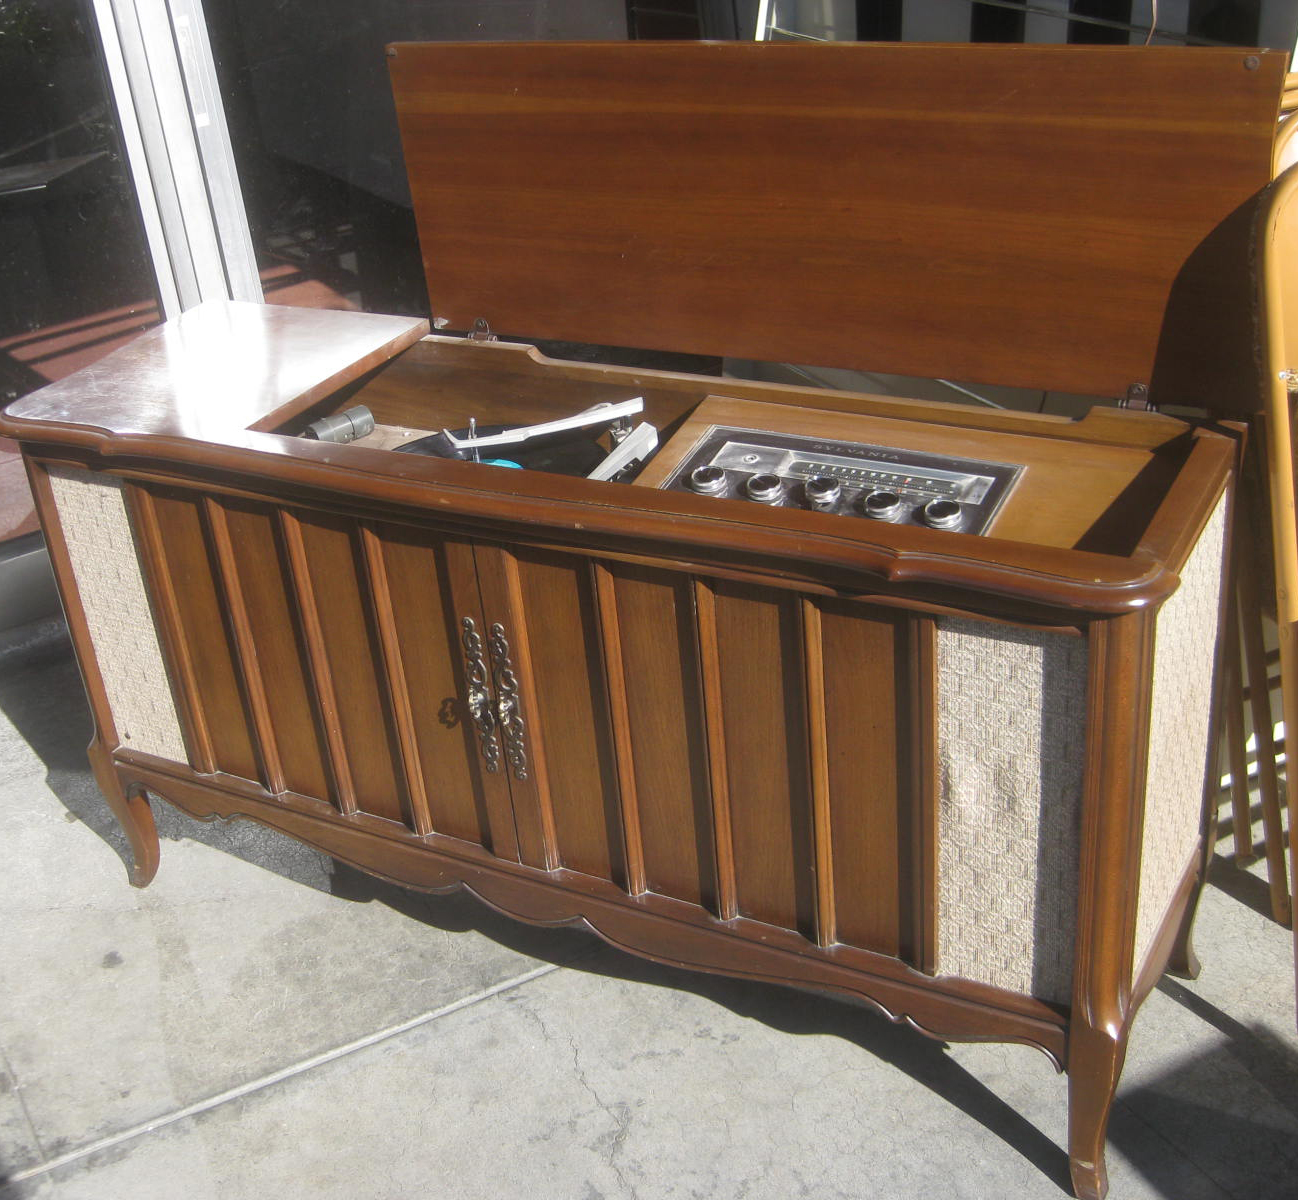 Uhuru furniture collectibles sold retro stereo for Turntable furniture